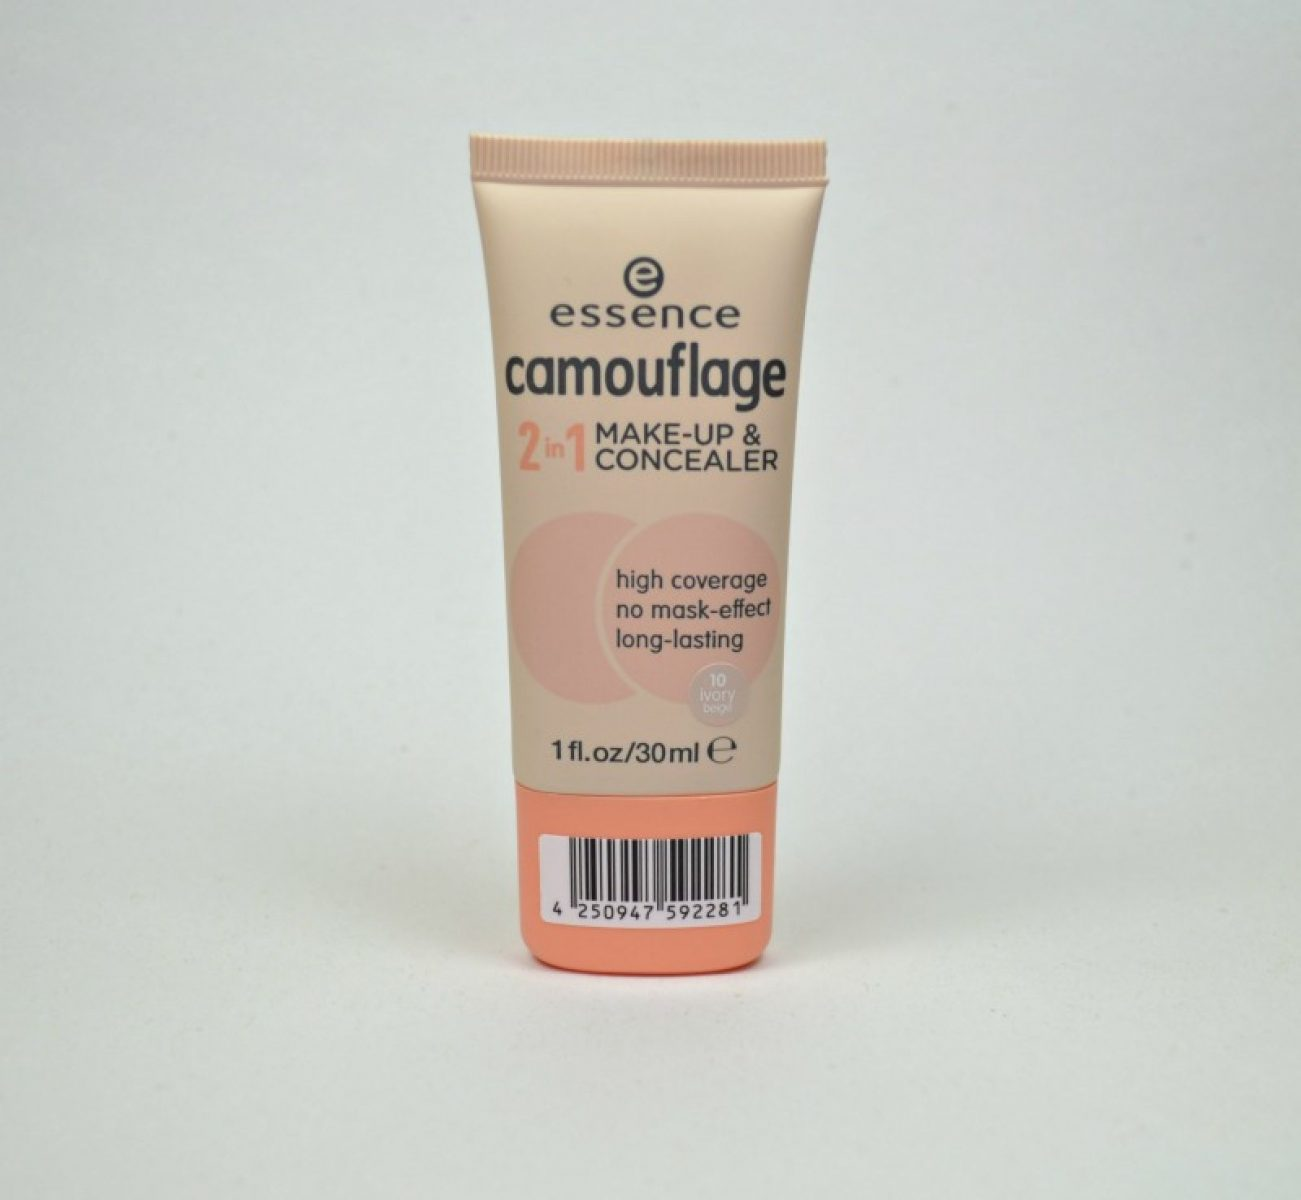 Review: Essence Camouflage 2in1 Make-up & Concealer -10 Ivory Beige